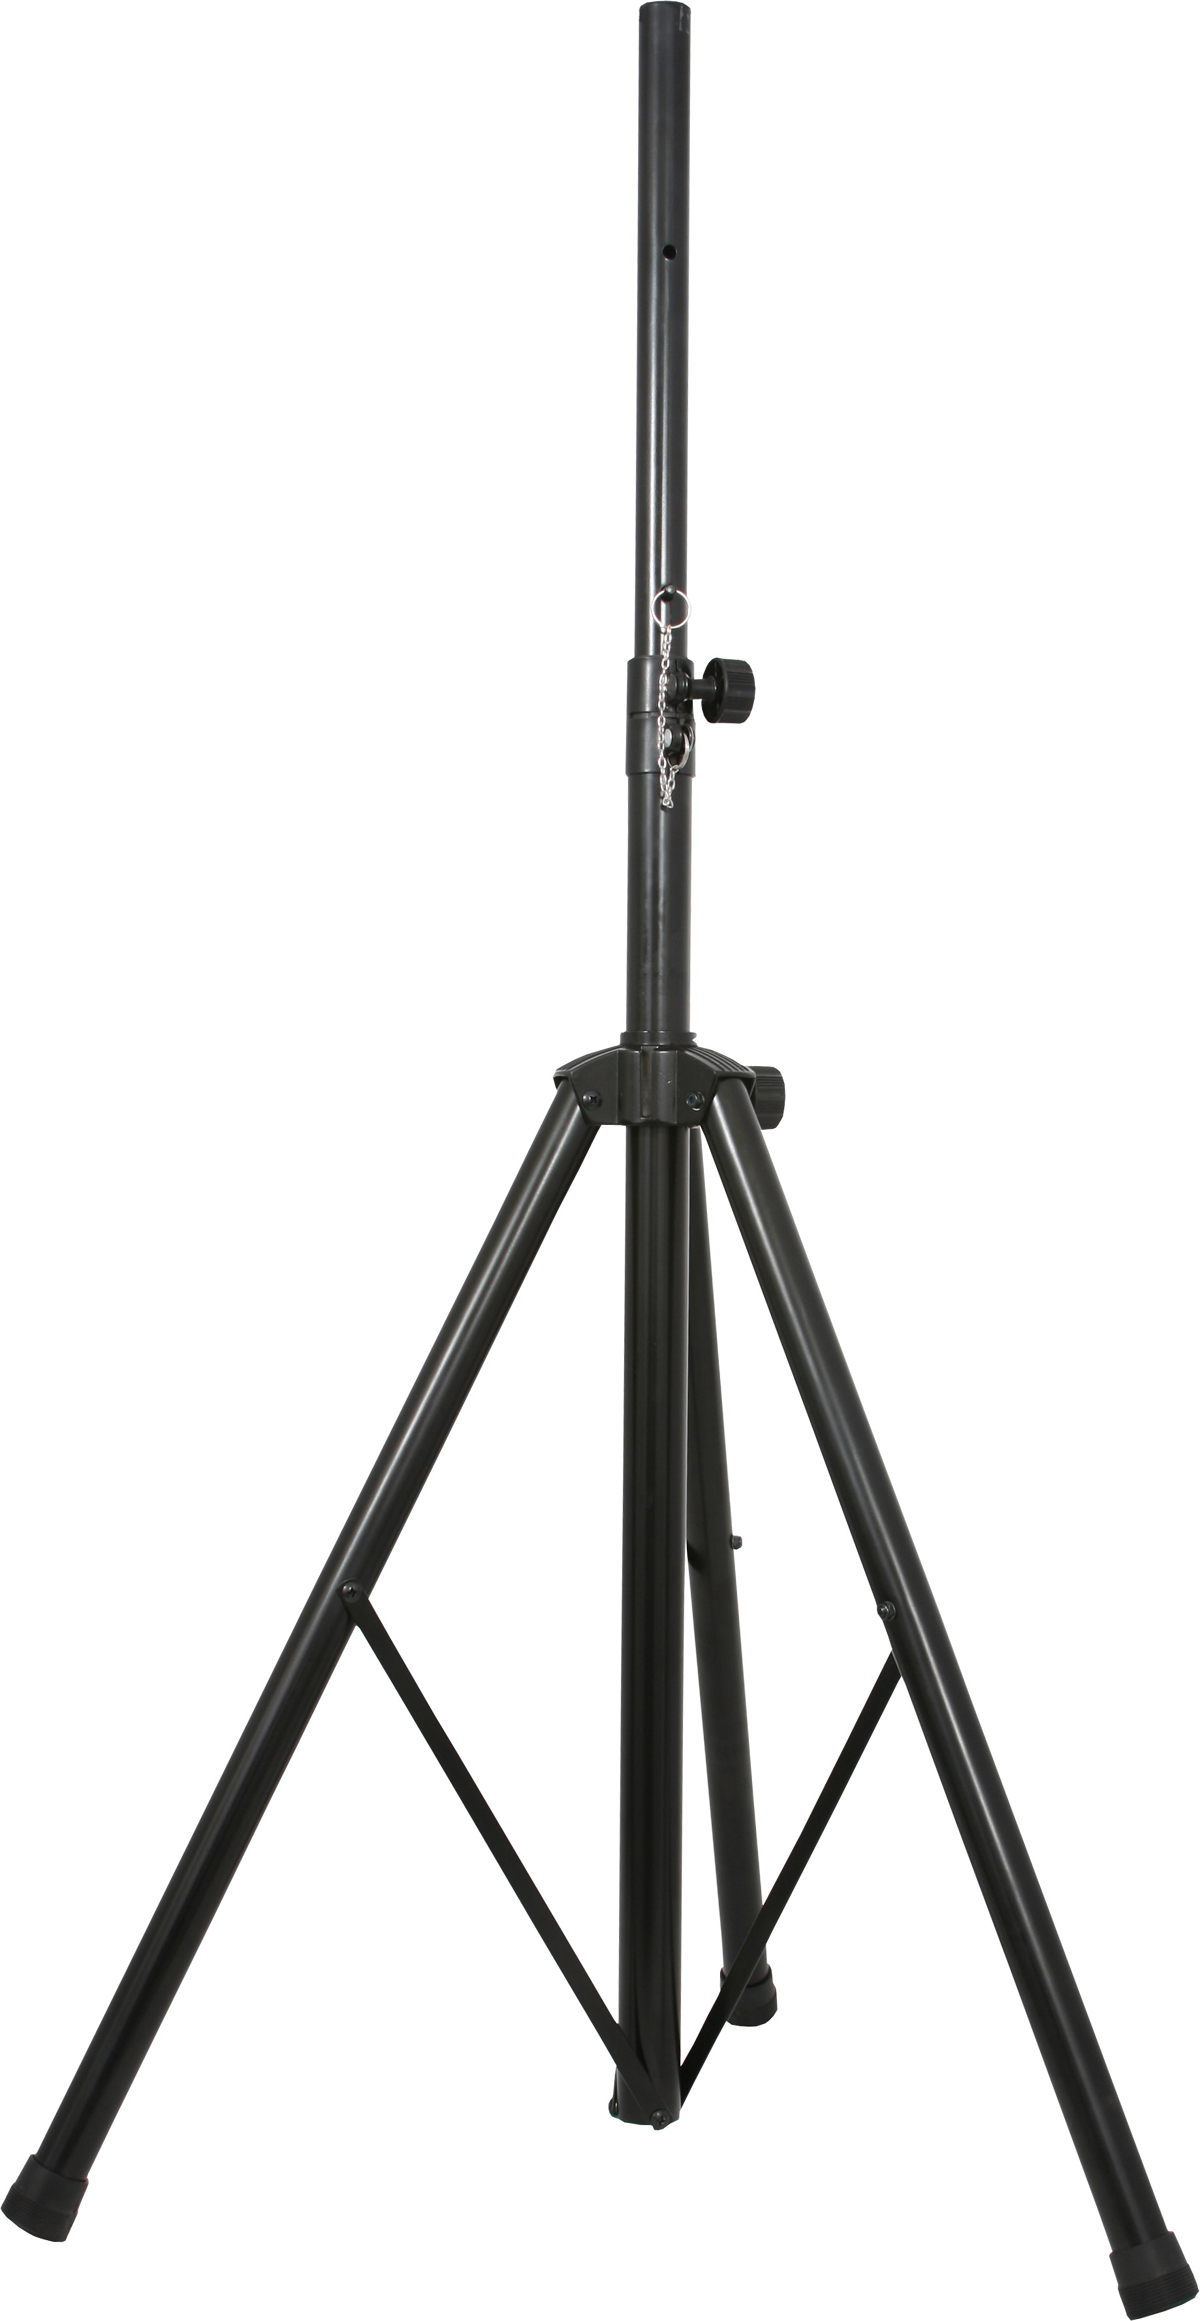 galaxy audio sst-spdx deluxe speaker stand with height-security system